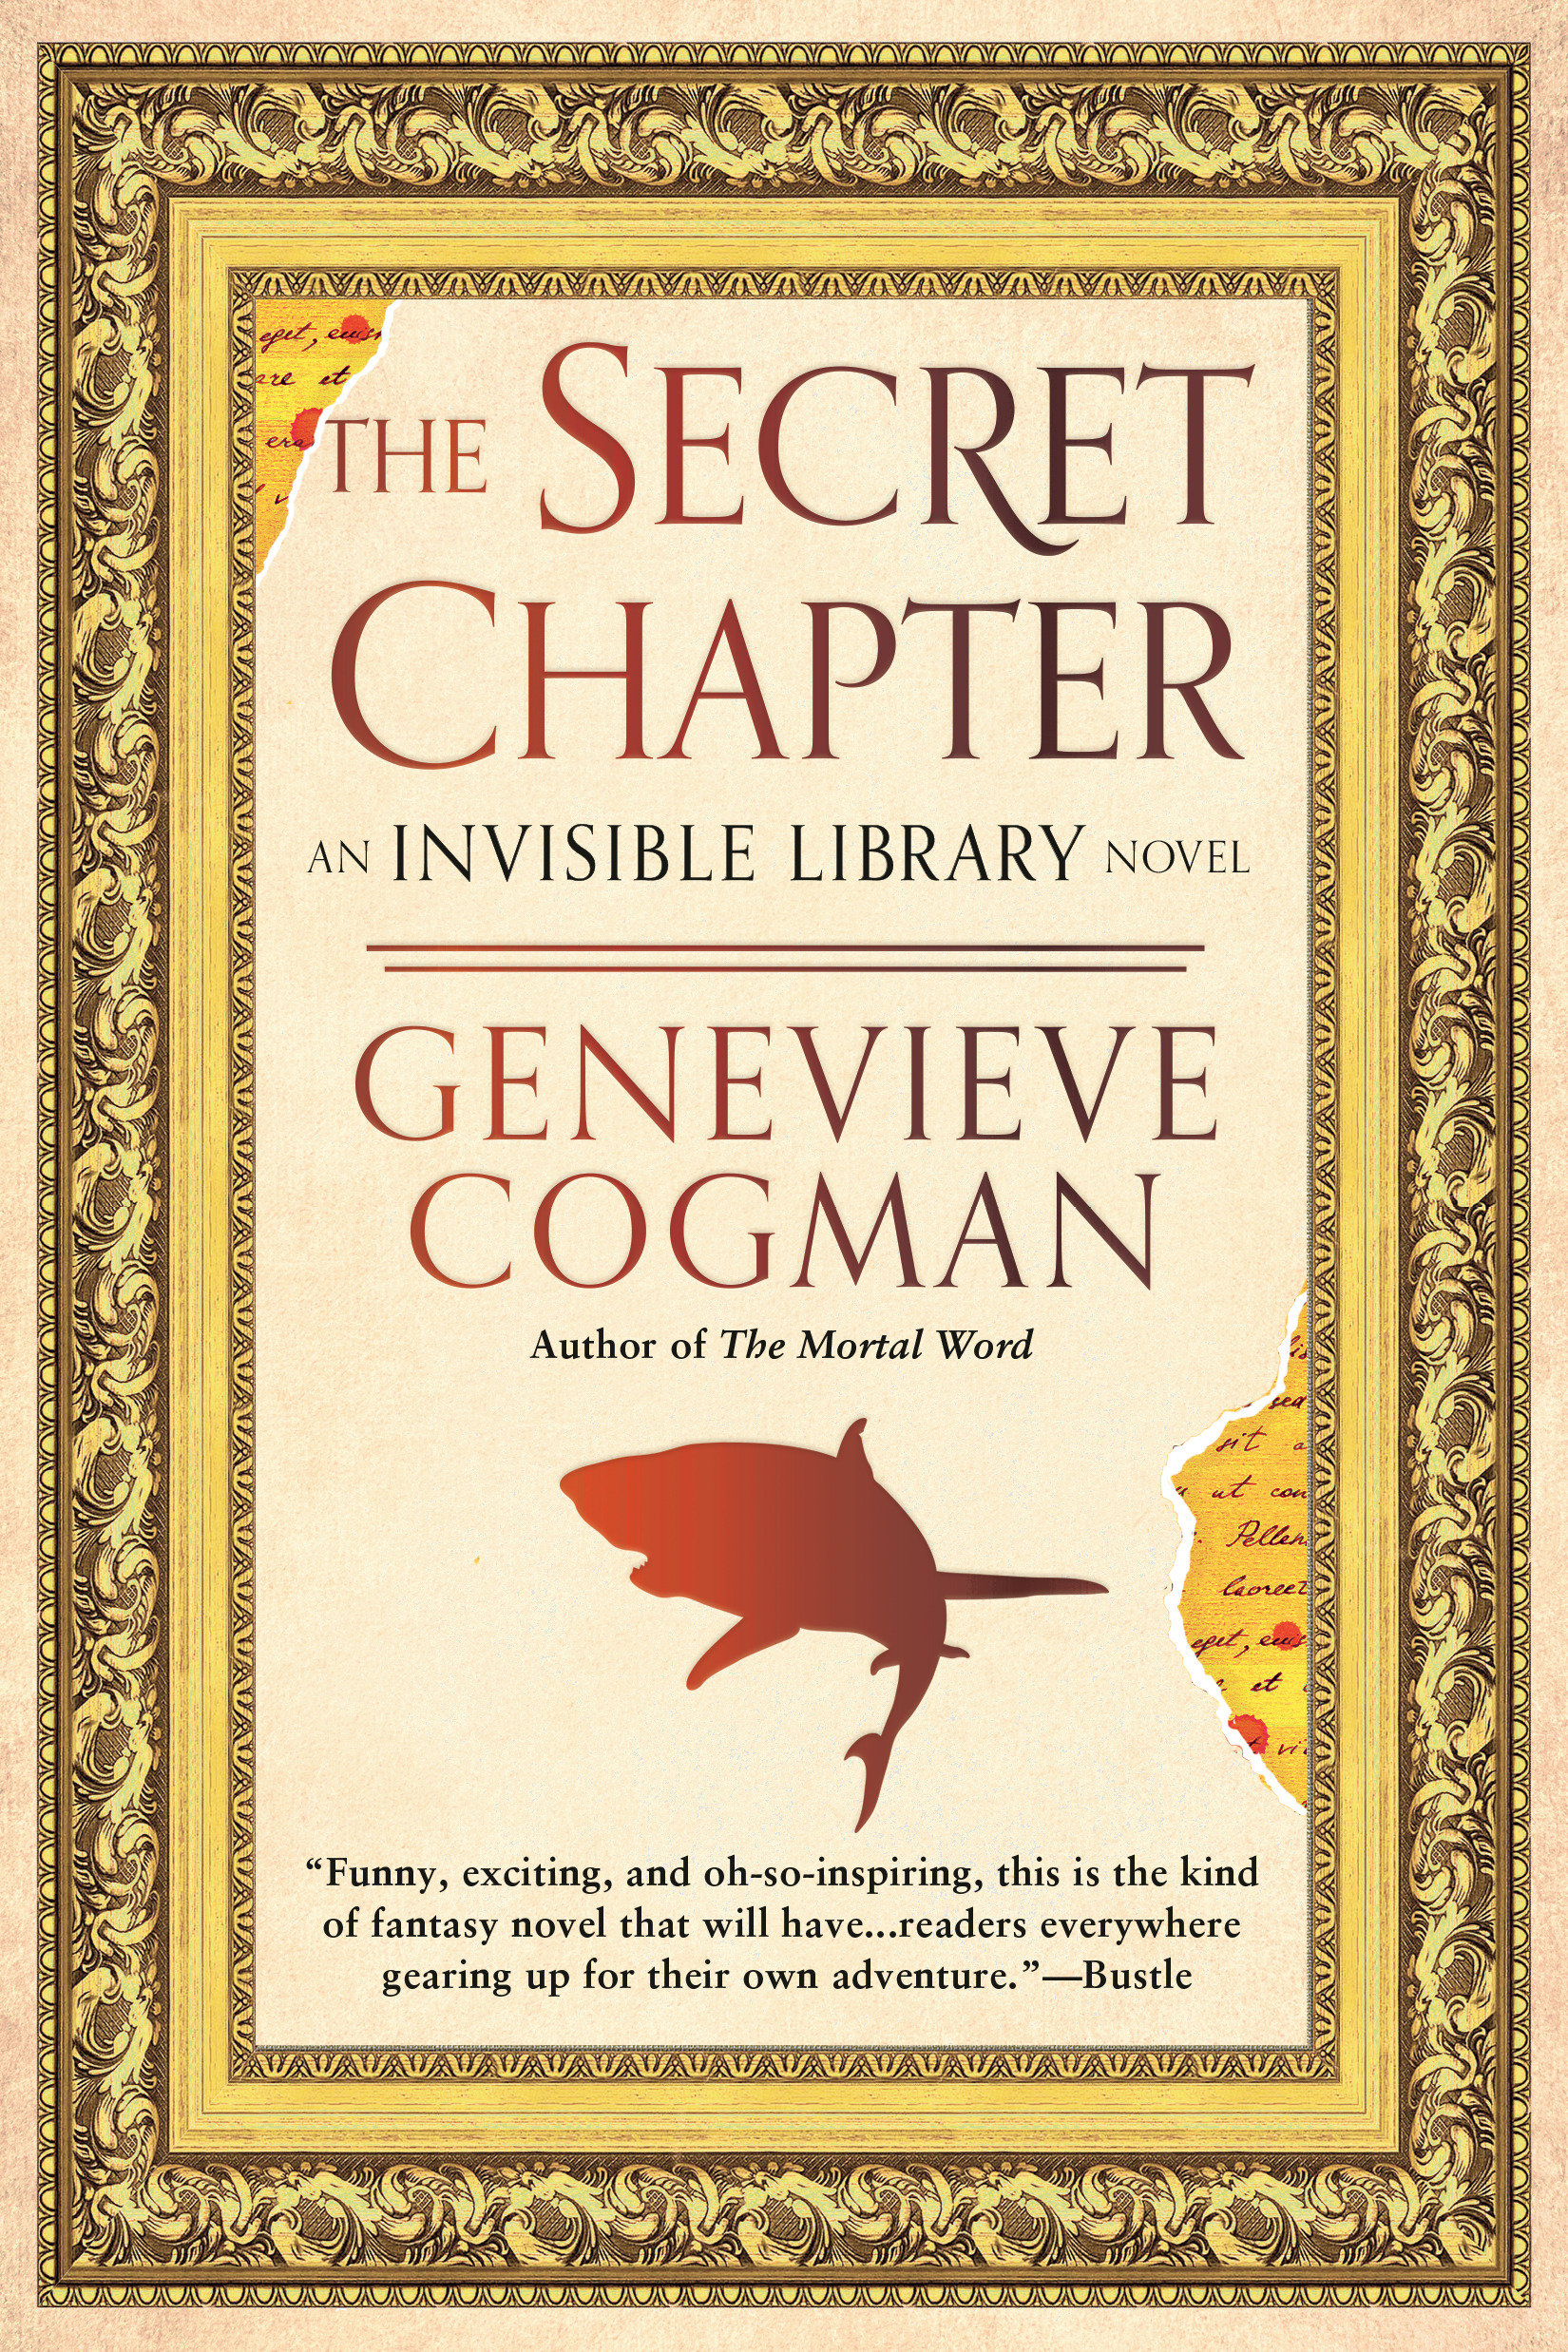 The secret chapter cover image